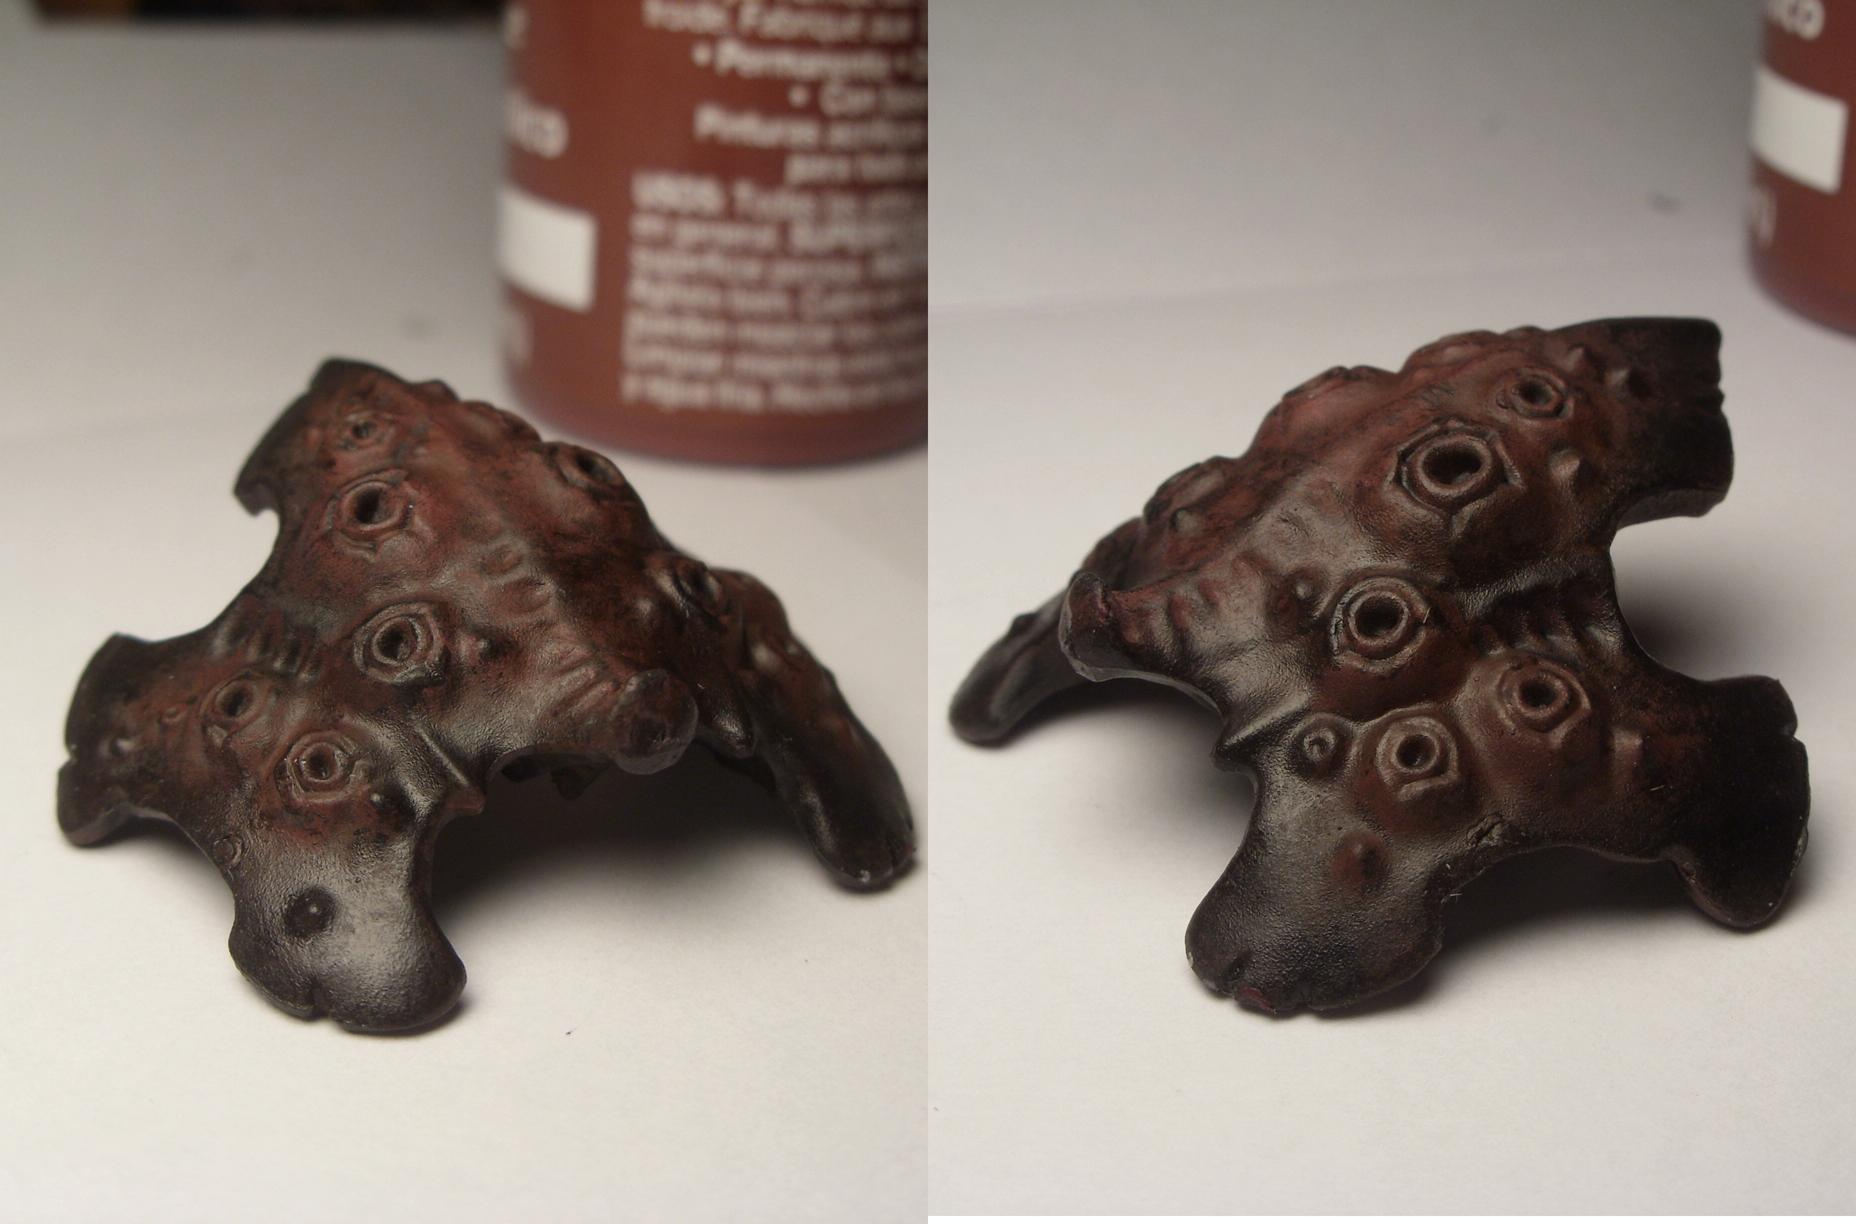 Carapace, Carnifex, Cysts, Job, Painting, Spore, Tyranids